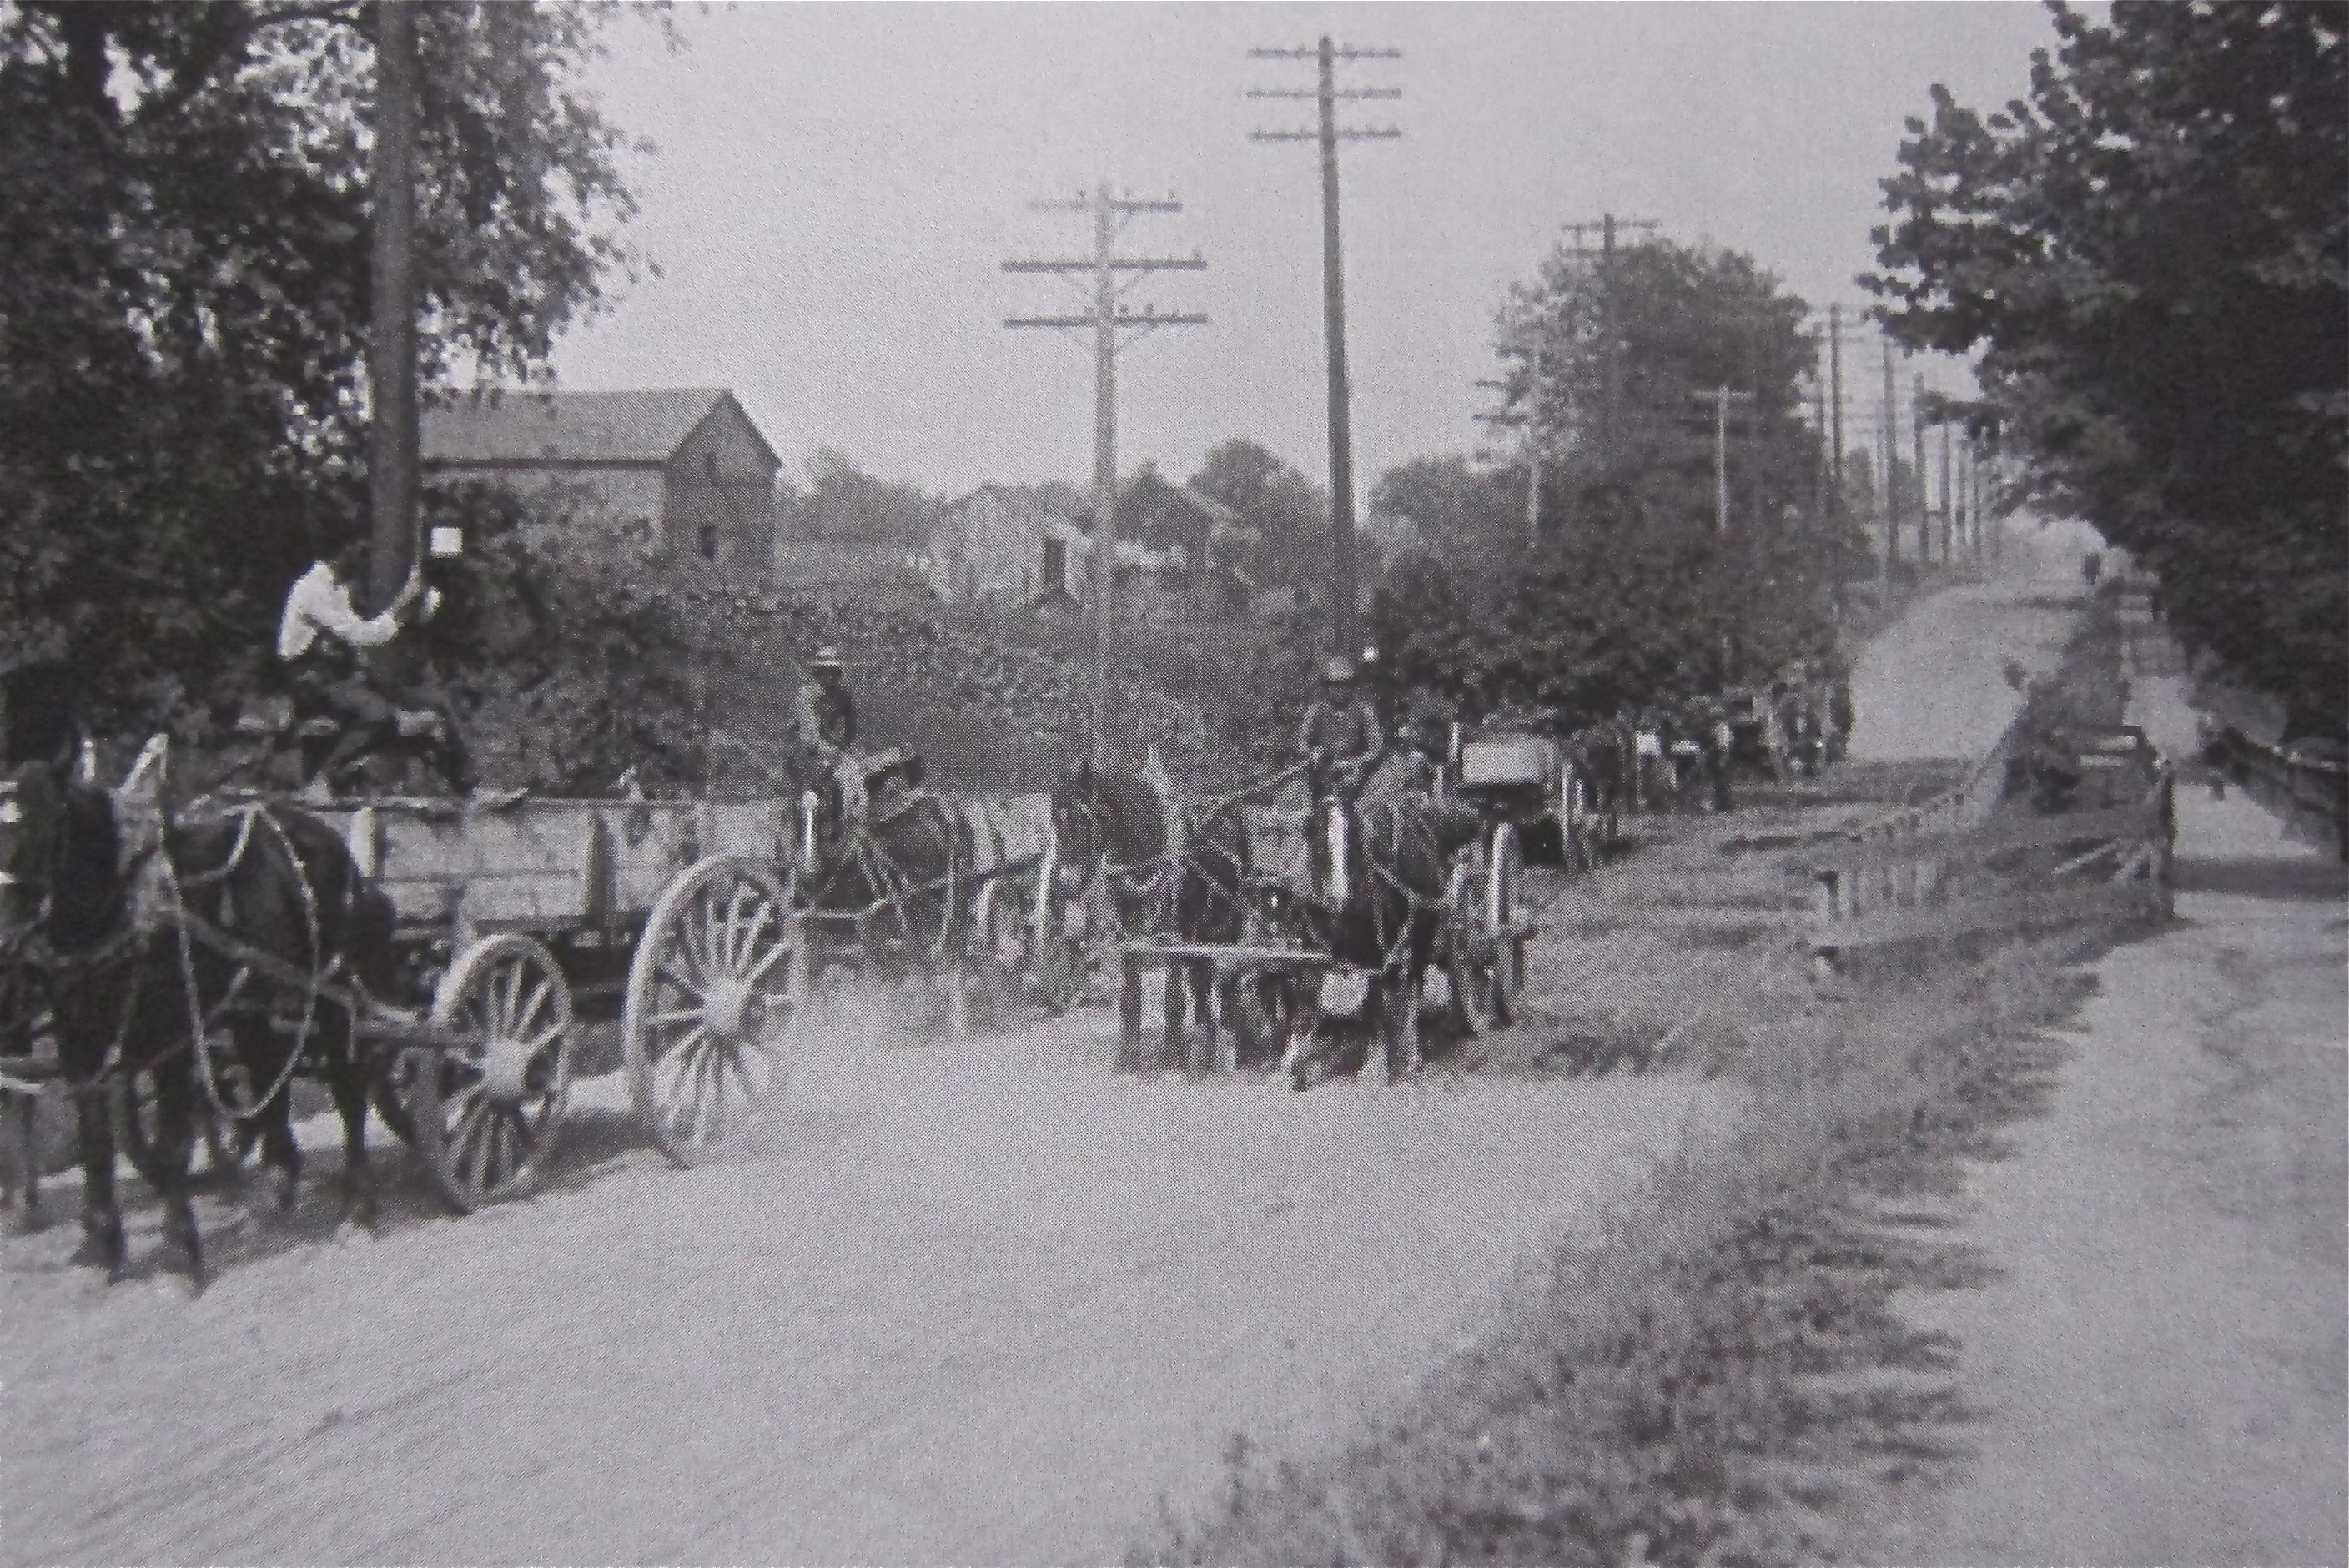 As late as 1912, just before work began to bring streetcar tracks and paving were brought to the East Danforth, farmers still had to rely on rickety wooden bridges to cross the creeks on the muddy Second Concession Road.